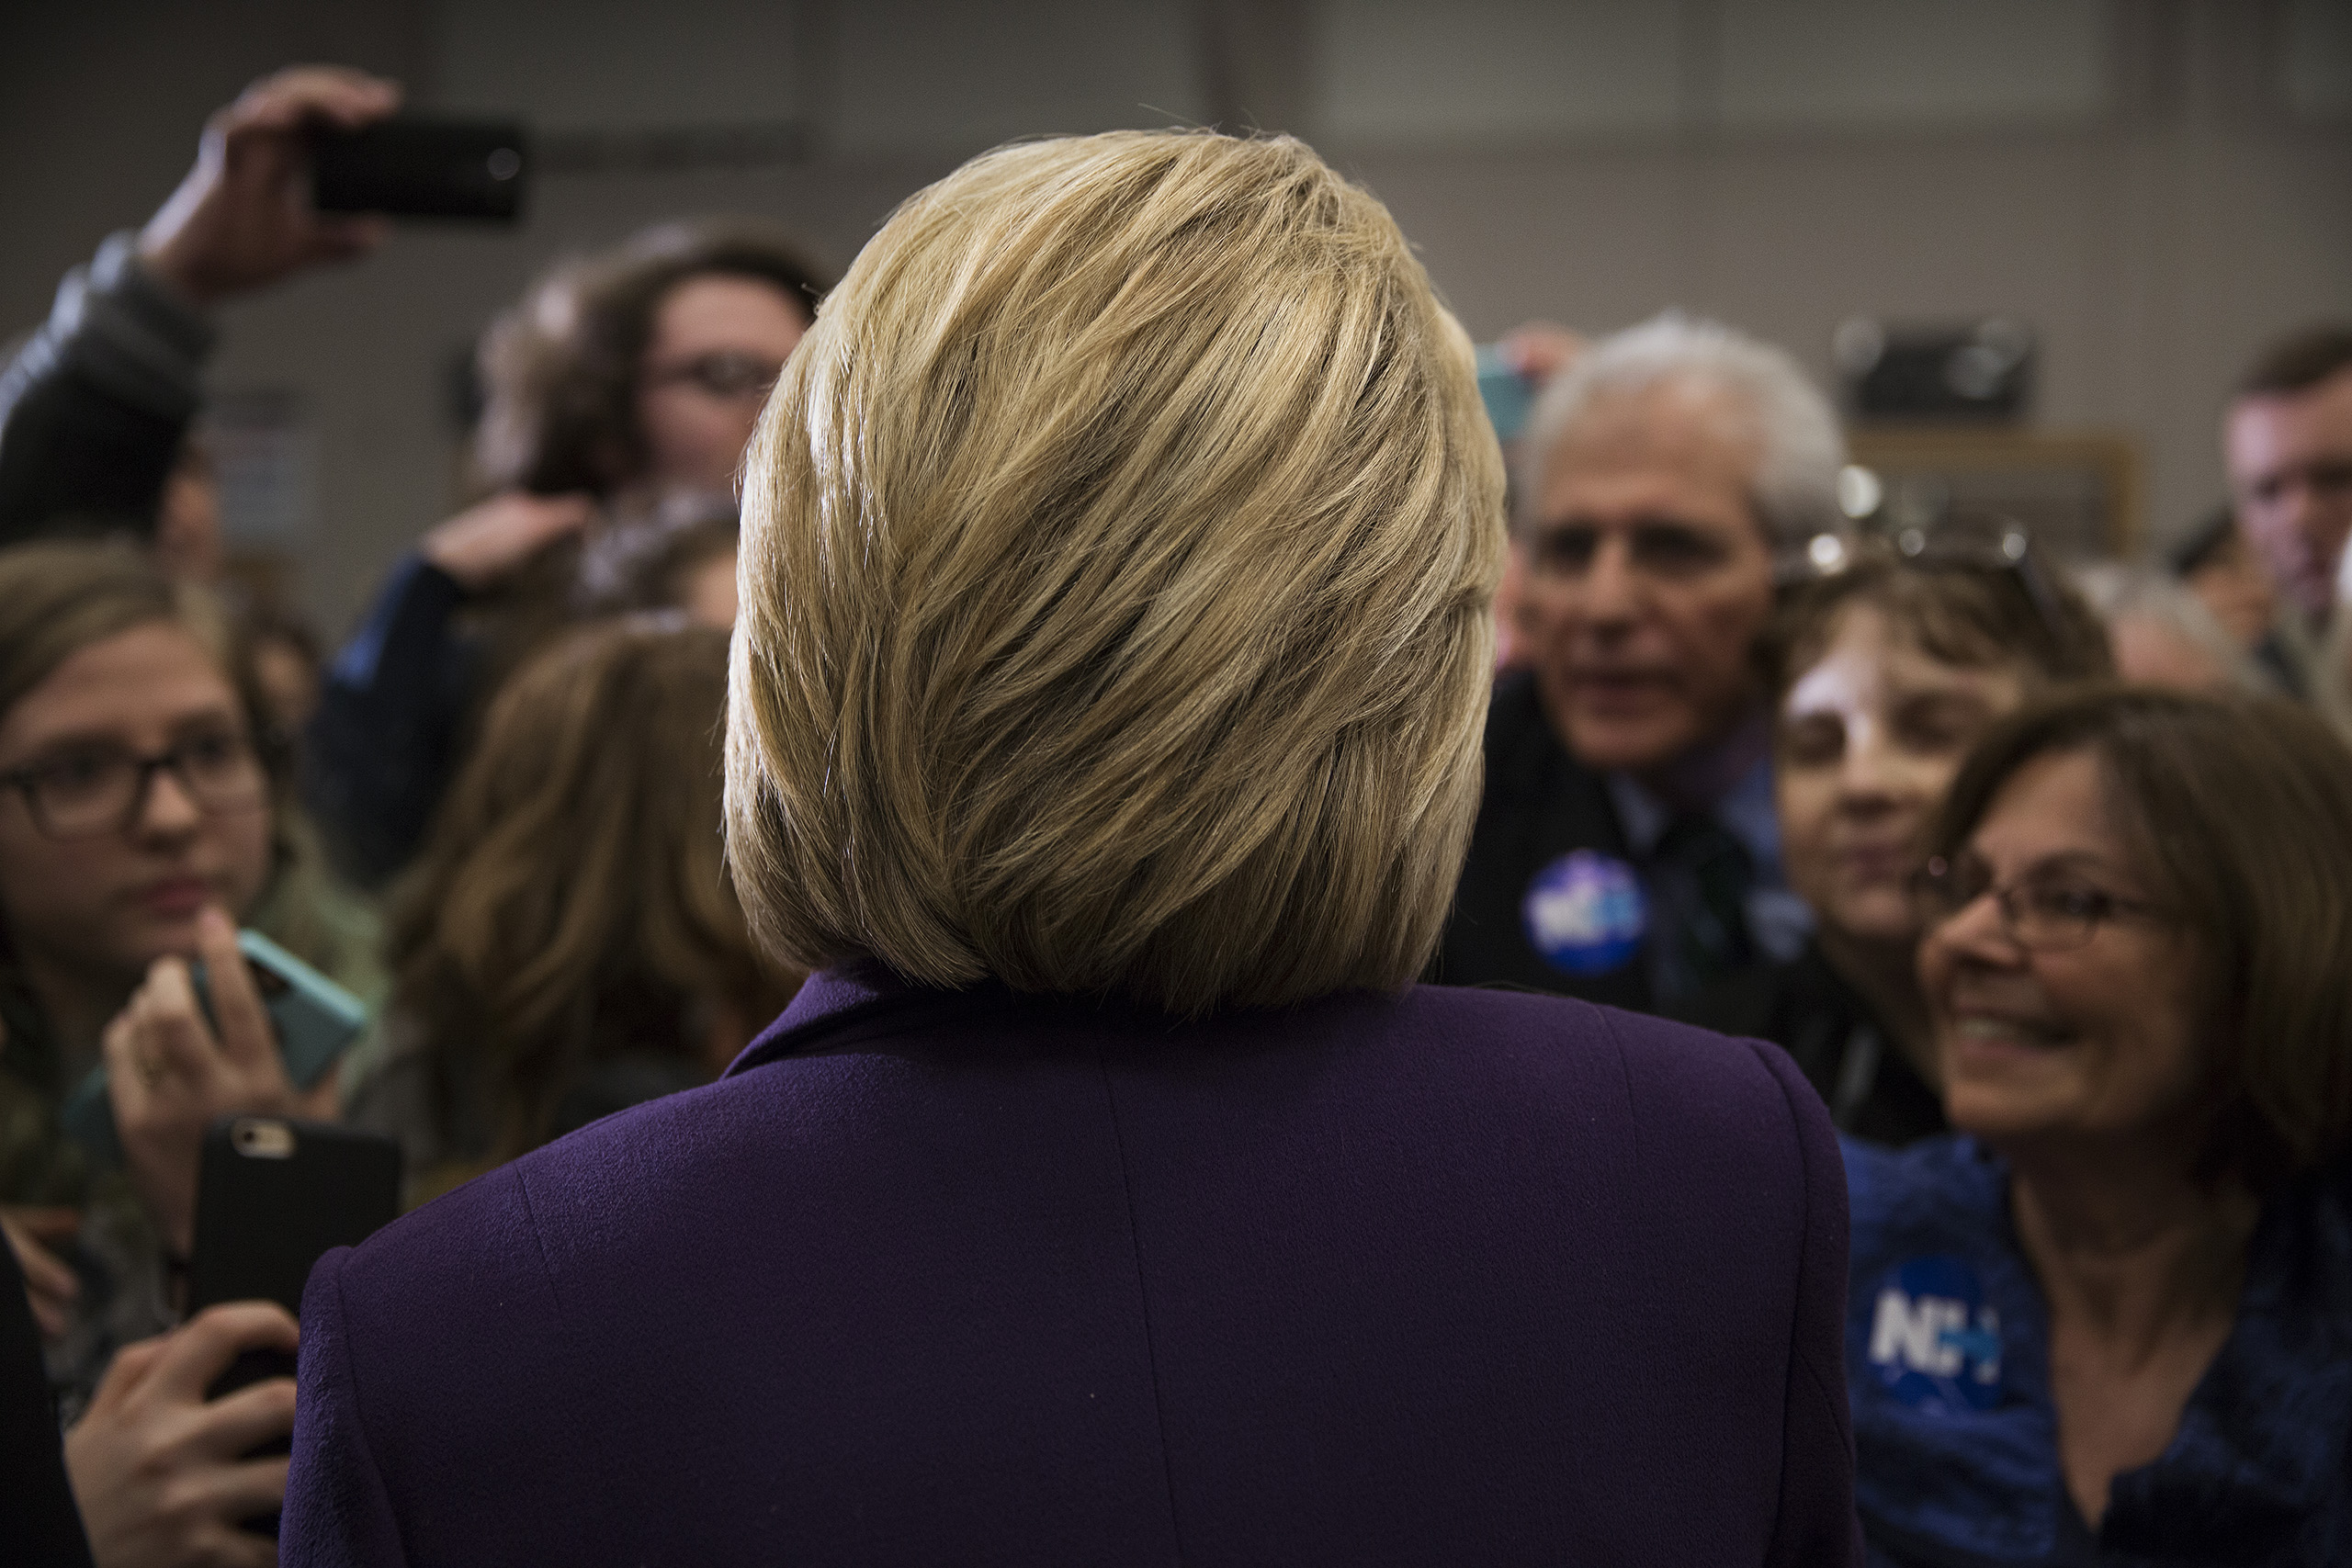 Democratic Presidential candidate Hillary Clinton talks to supporters while campaigning at Winnacunnet High School in Hampton, N.H. Feb. 2, 2016.